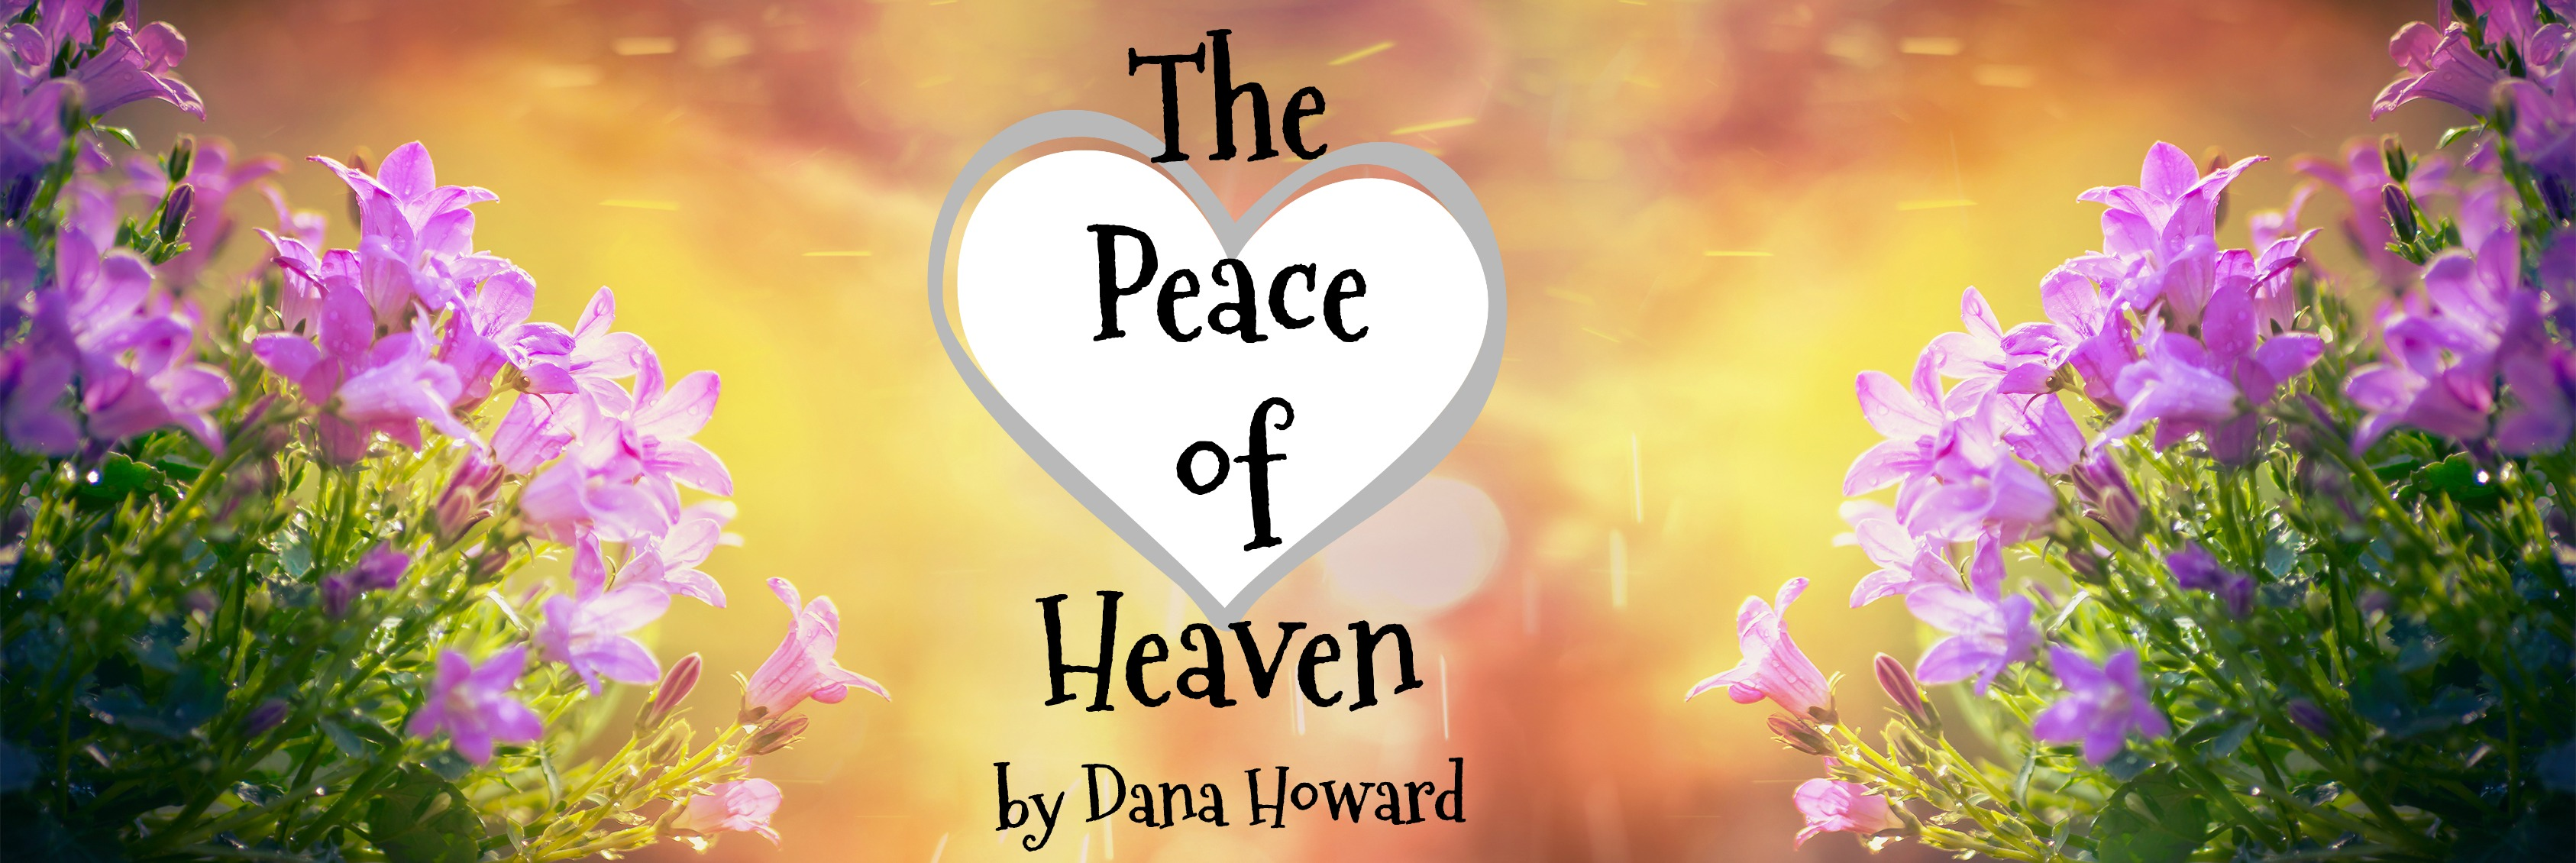 The Peace of Heaven